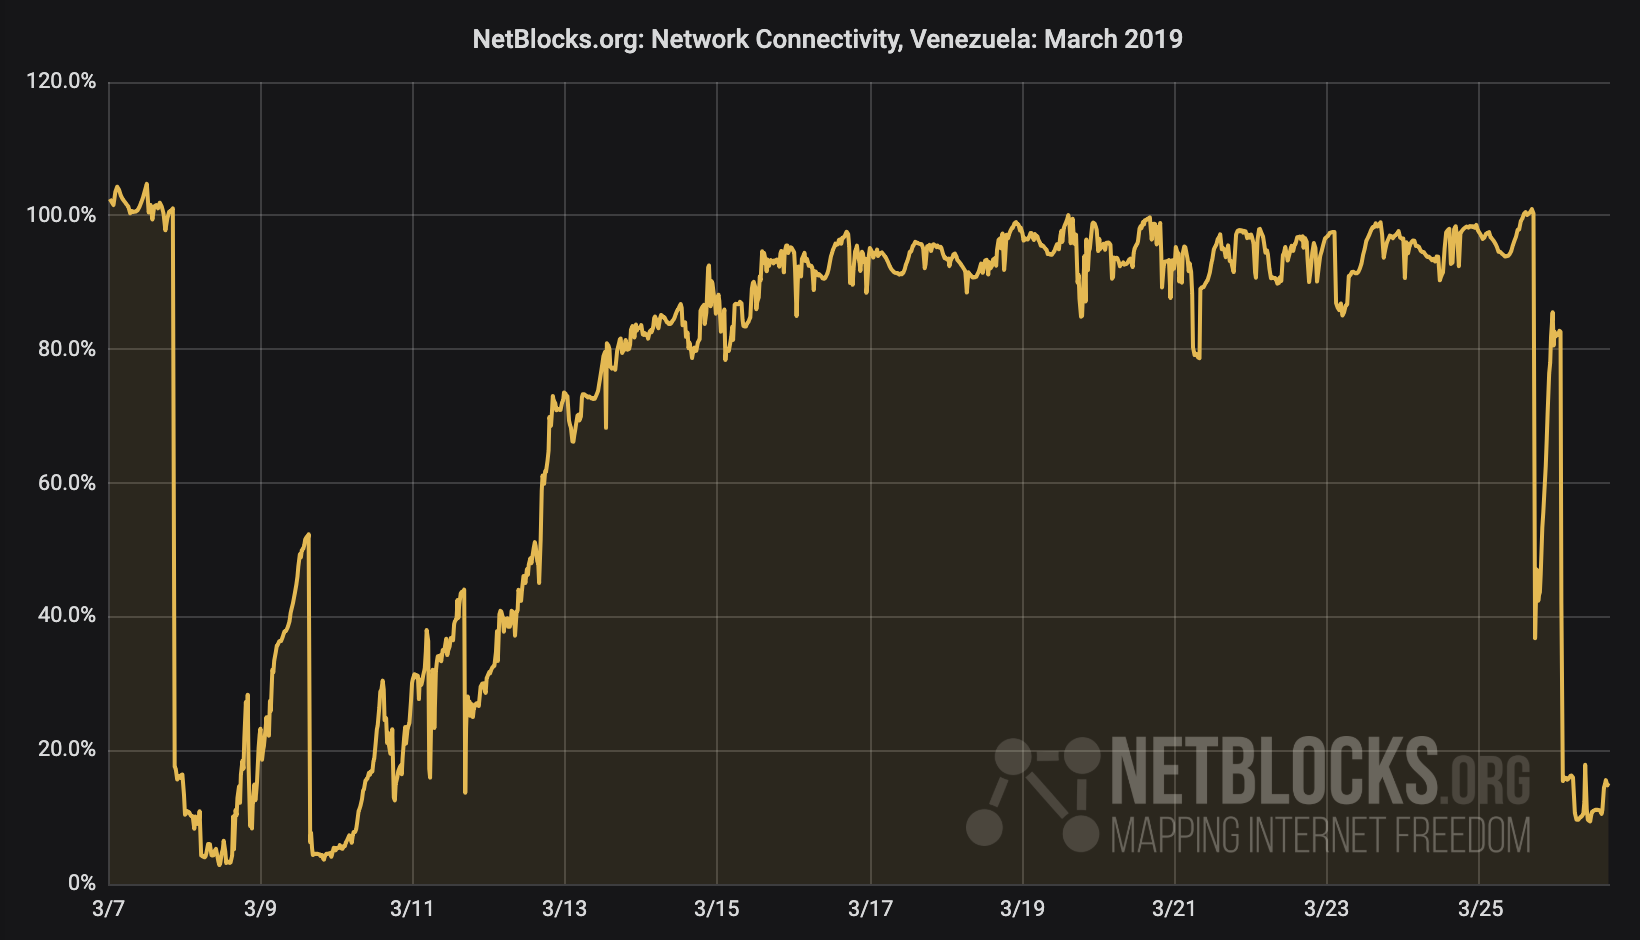 New nationwide power outage detected across Venezuela